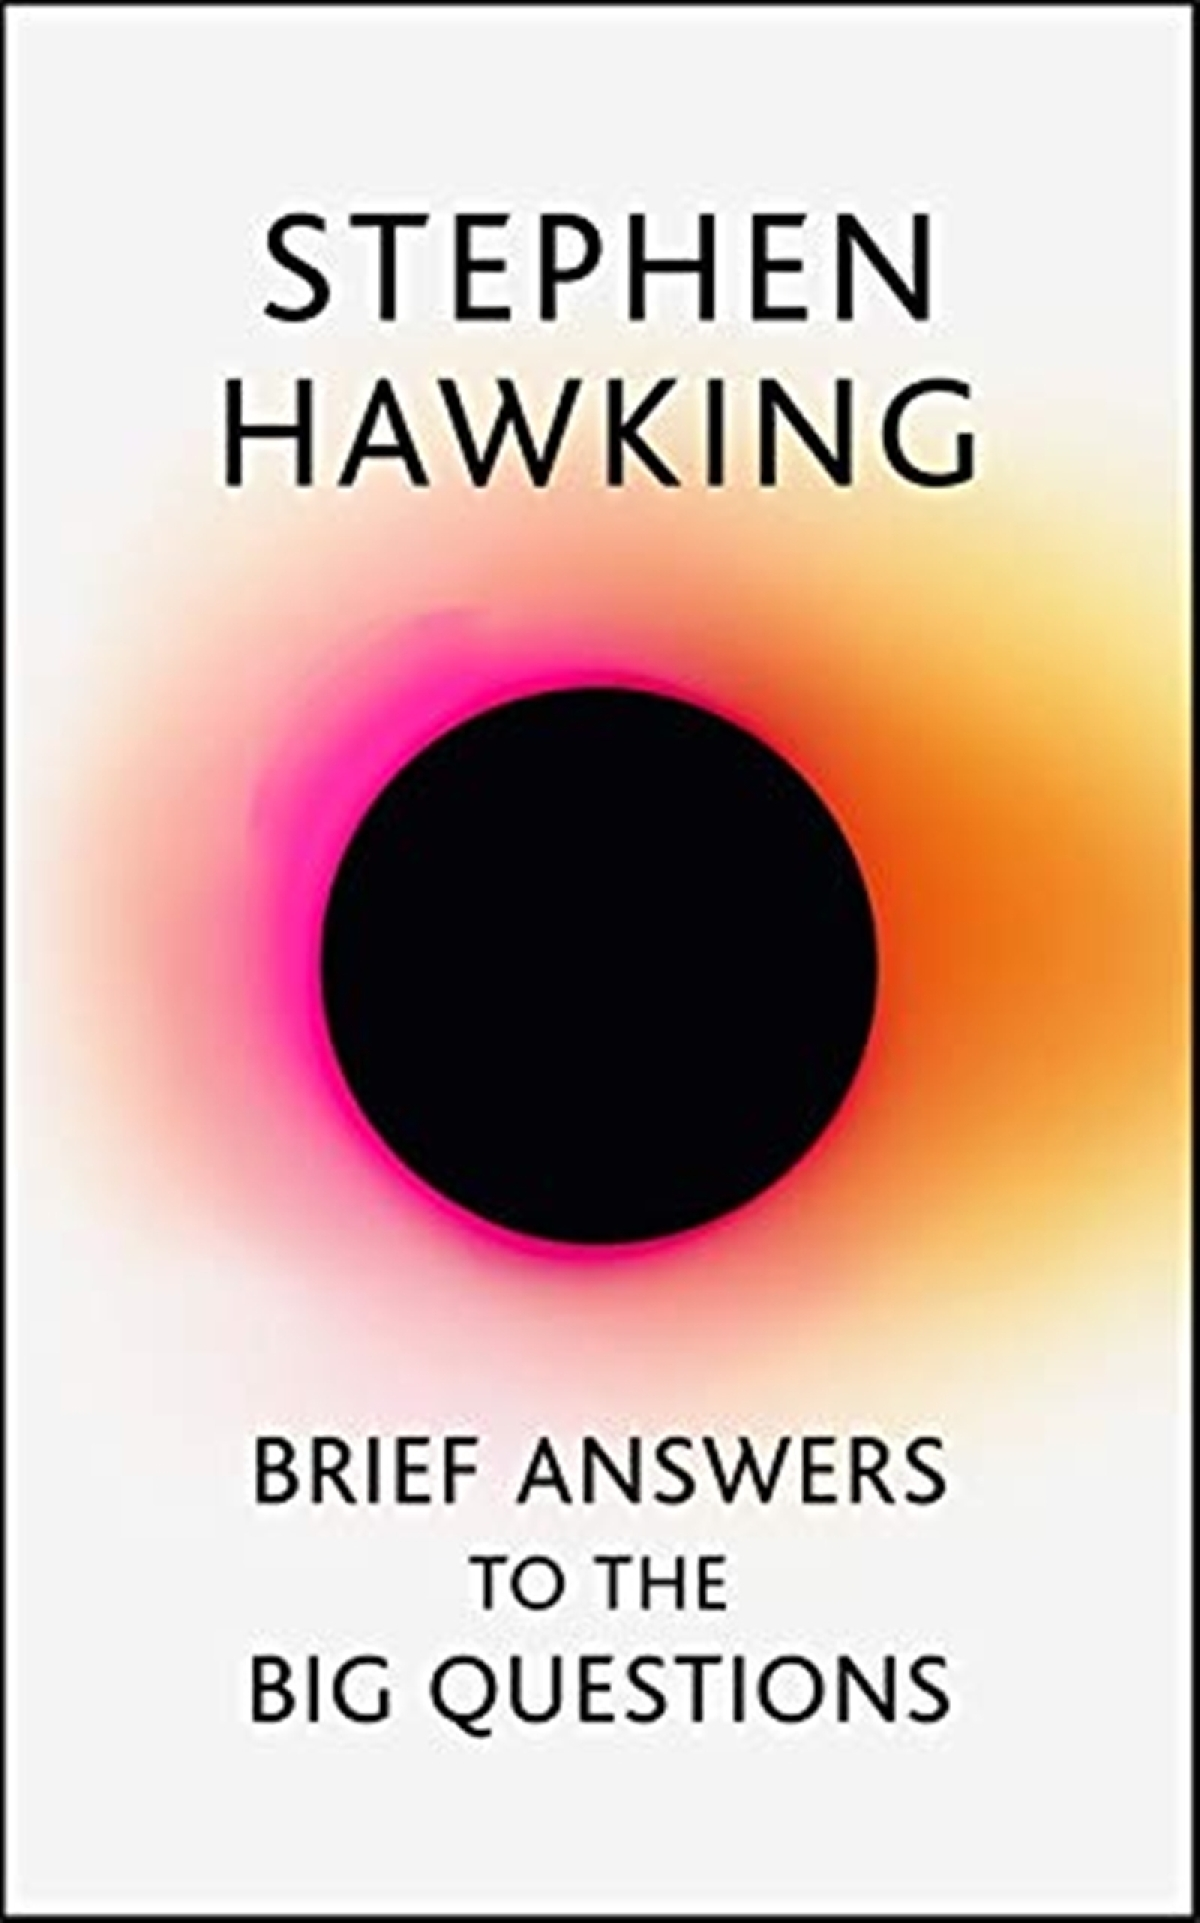 Brief Answers To The Big Questions by Stephen Hawking: Review